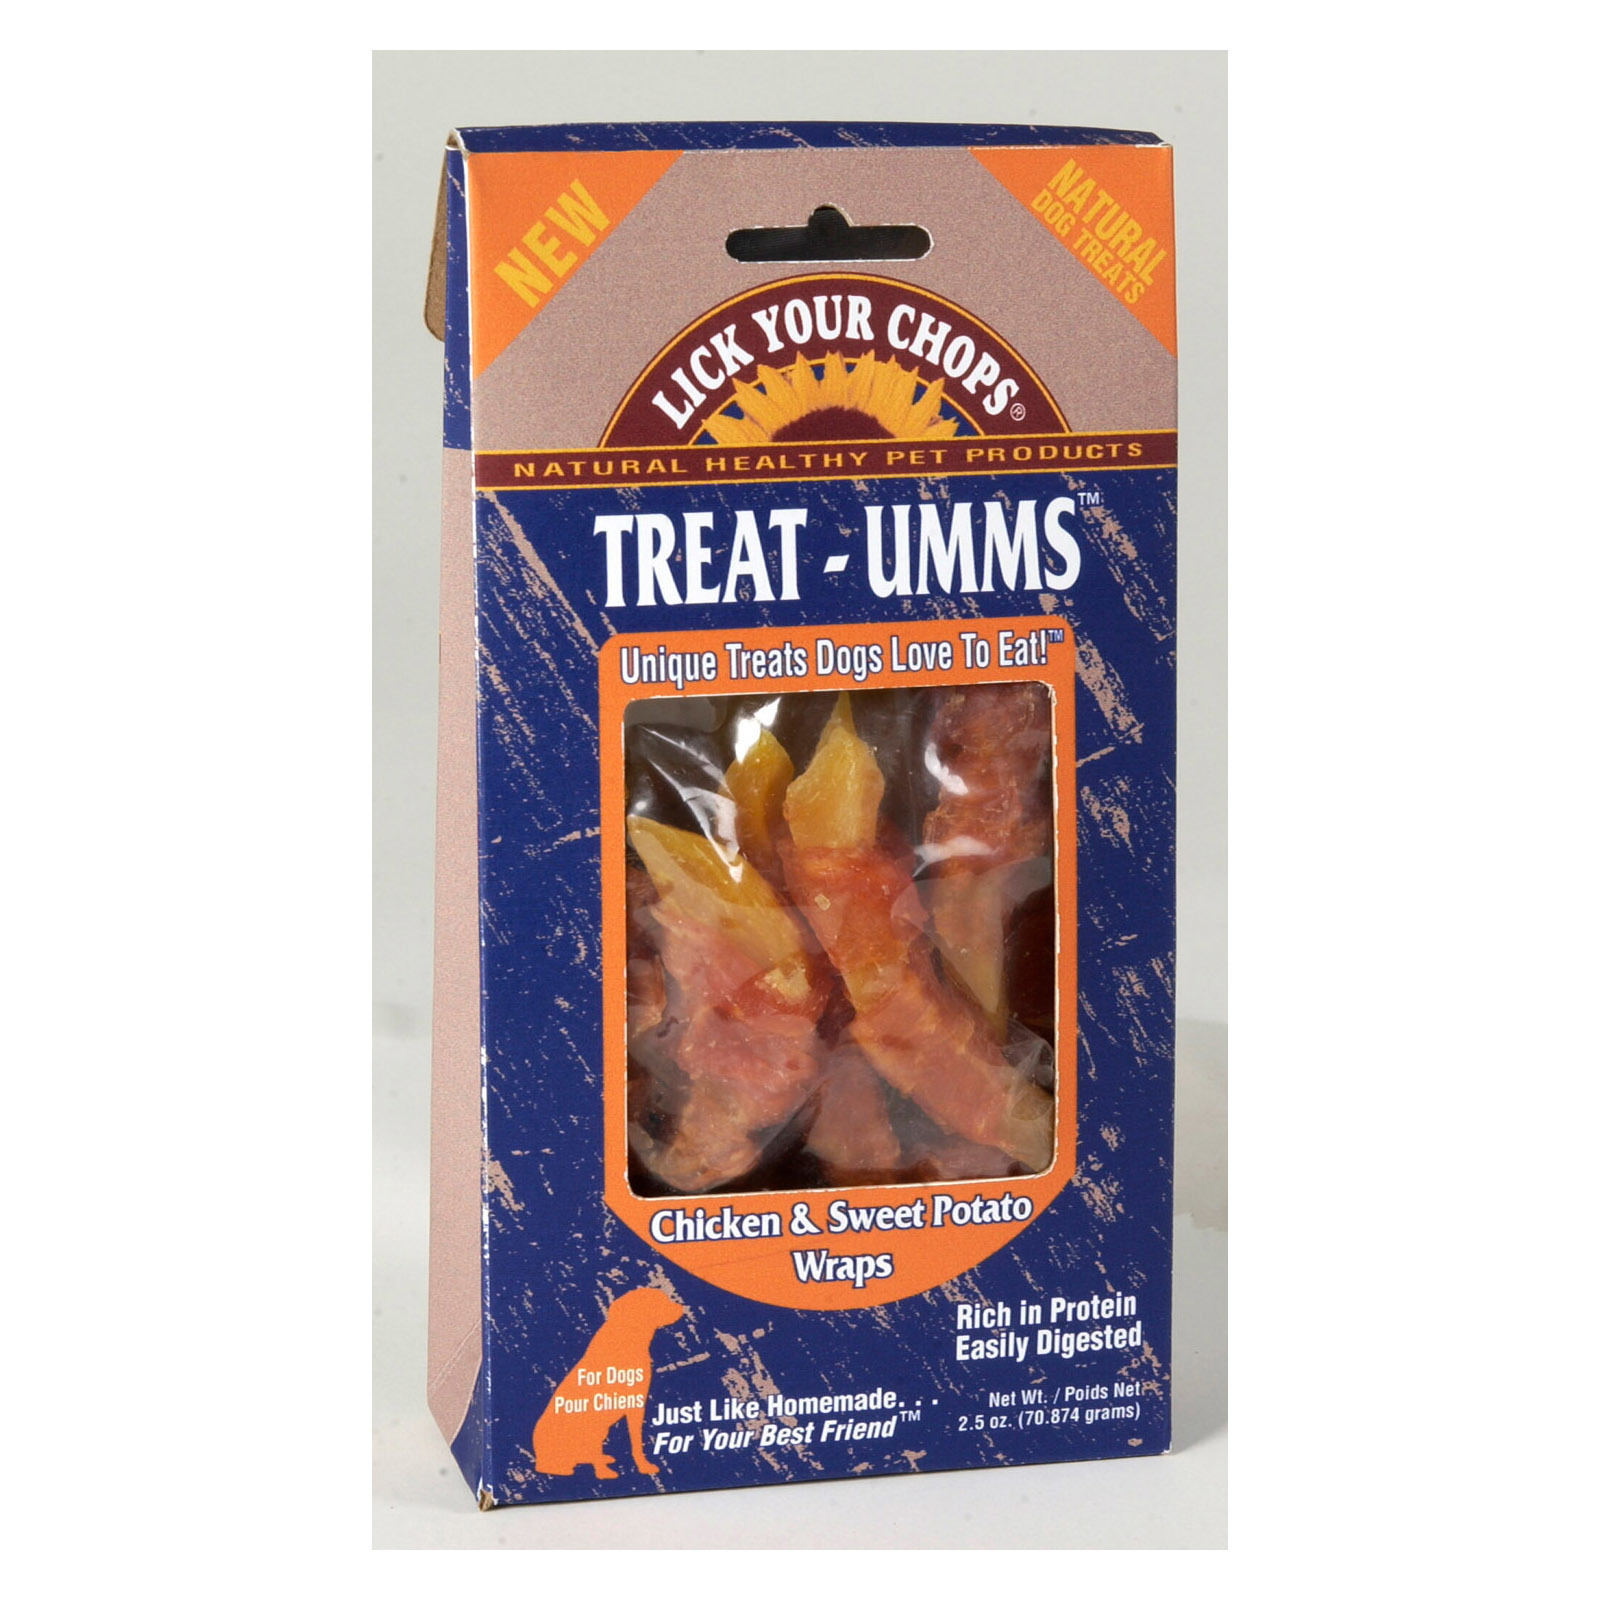 Lick Your Chops Treat - Umms Dog Treats - Chicken and Sweet Potato - Case of 6 - 2.5 oz.